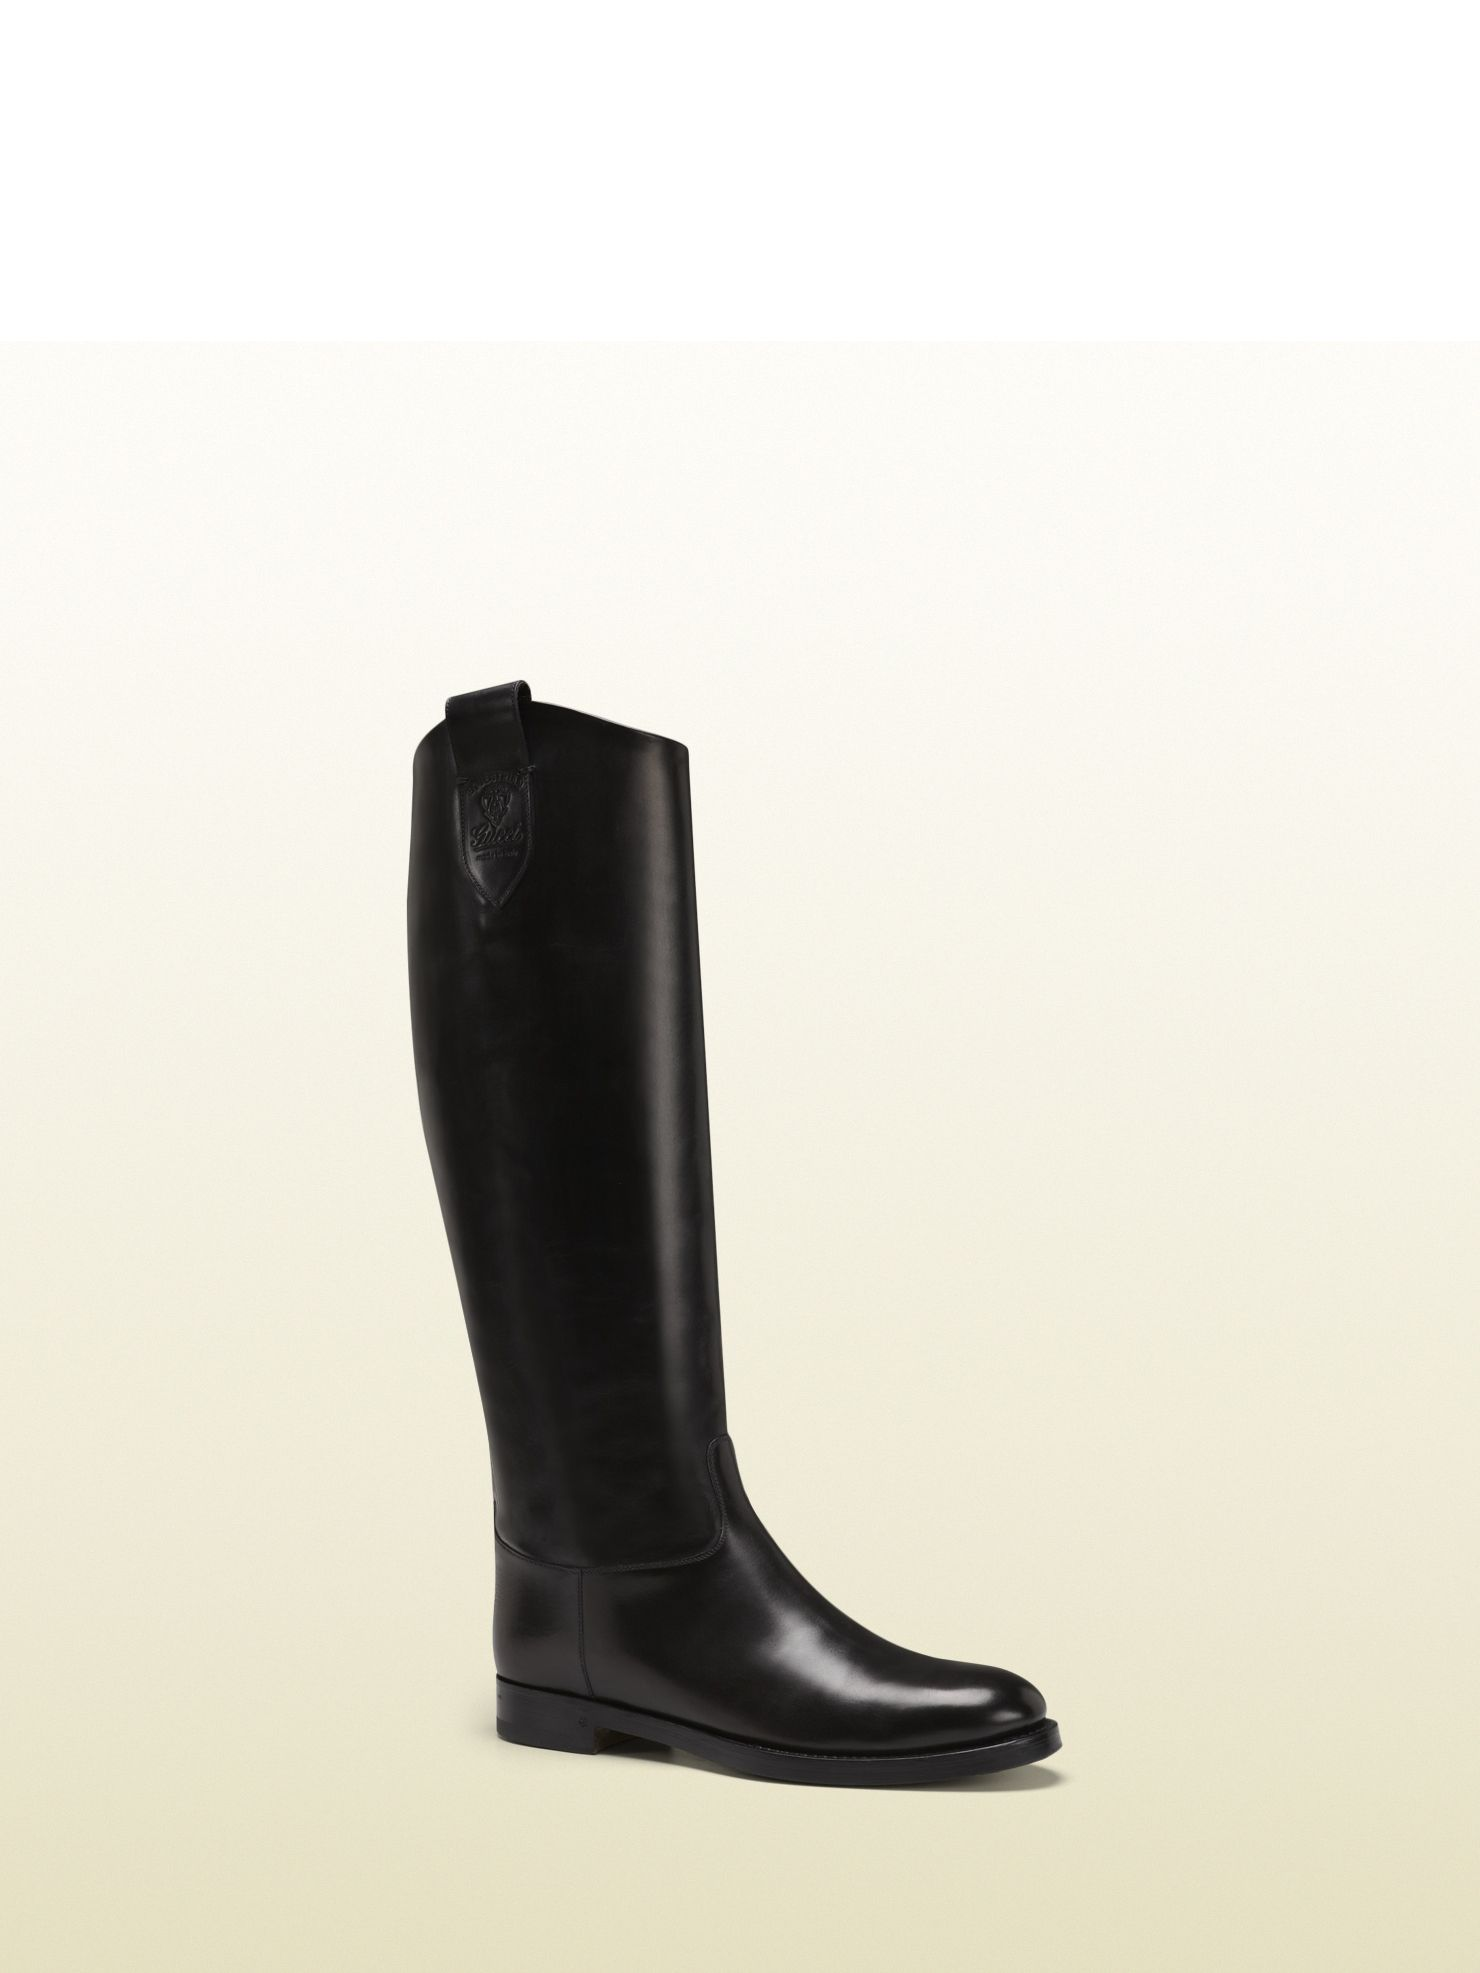 852208452 Gucci - 312473 BLM00 1000 - leather riding boot with gucci crest from  equestrian collection - black leather gucci crest detail *Made in Italy .6